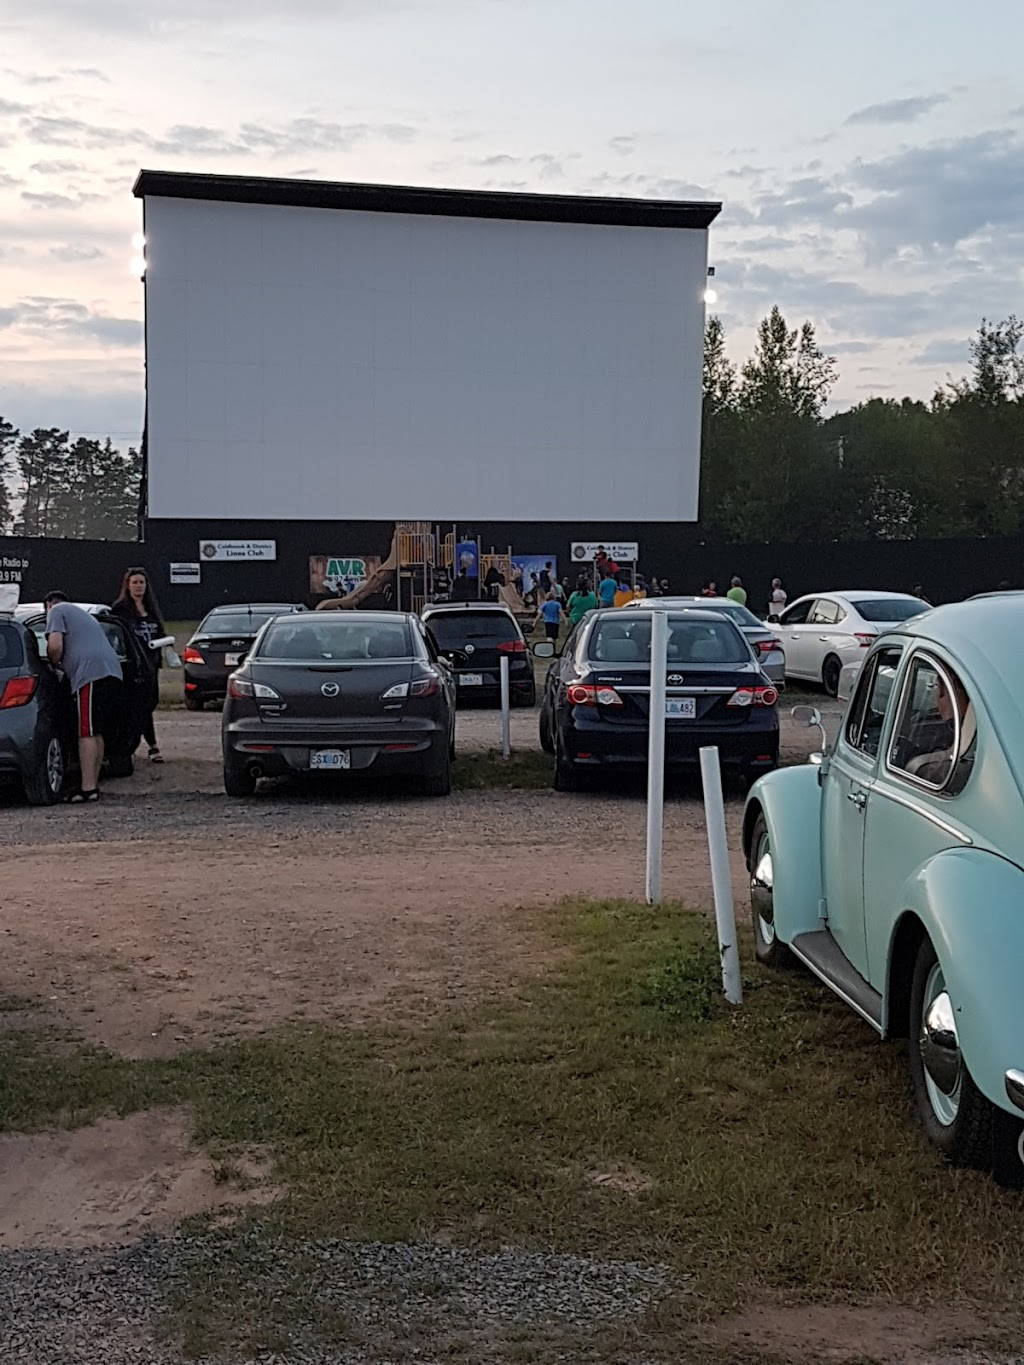 Valley Drive In Theatre | movie theater | 5934 Highway #1, Cambridge Station, NS B0P 1G0, Canada | 9025380772 OR +1 902-538-0772